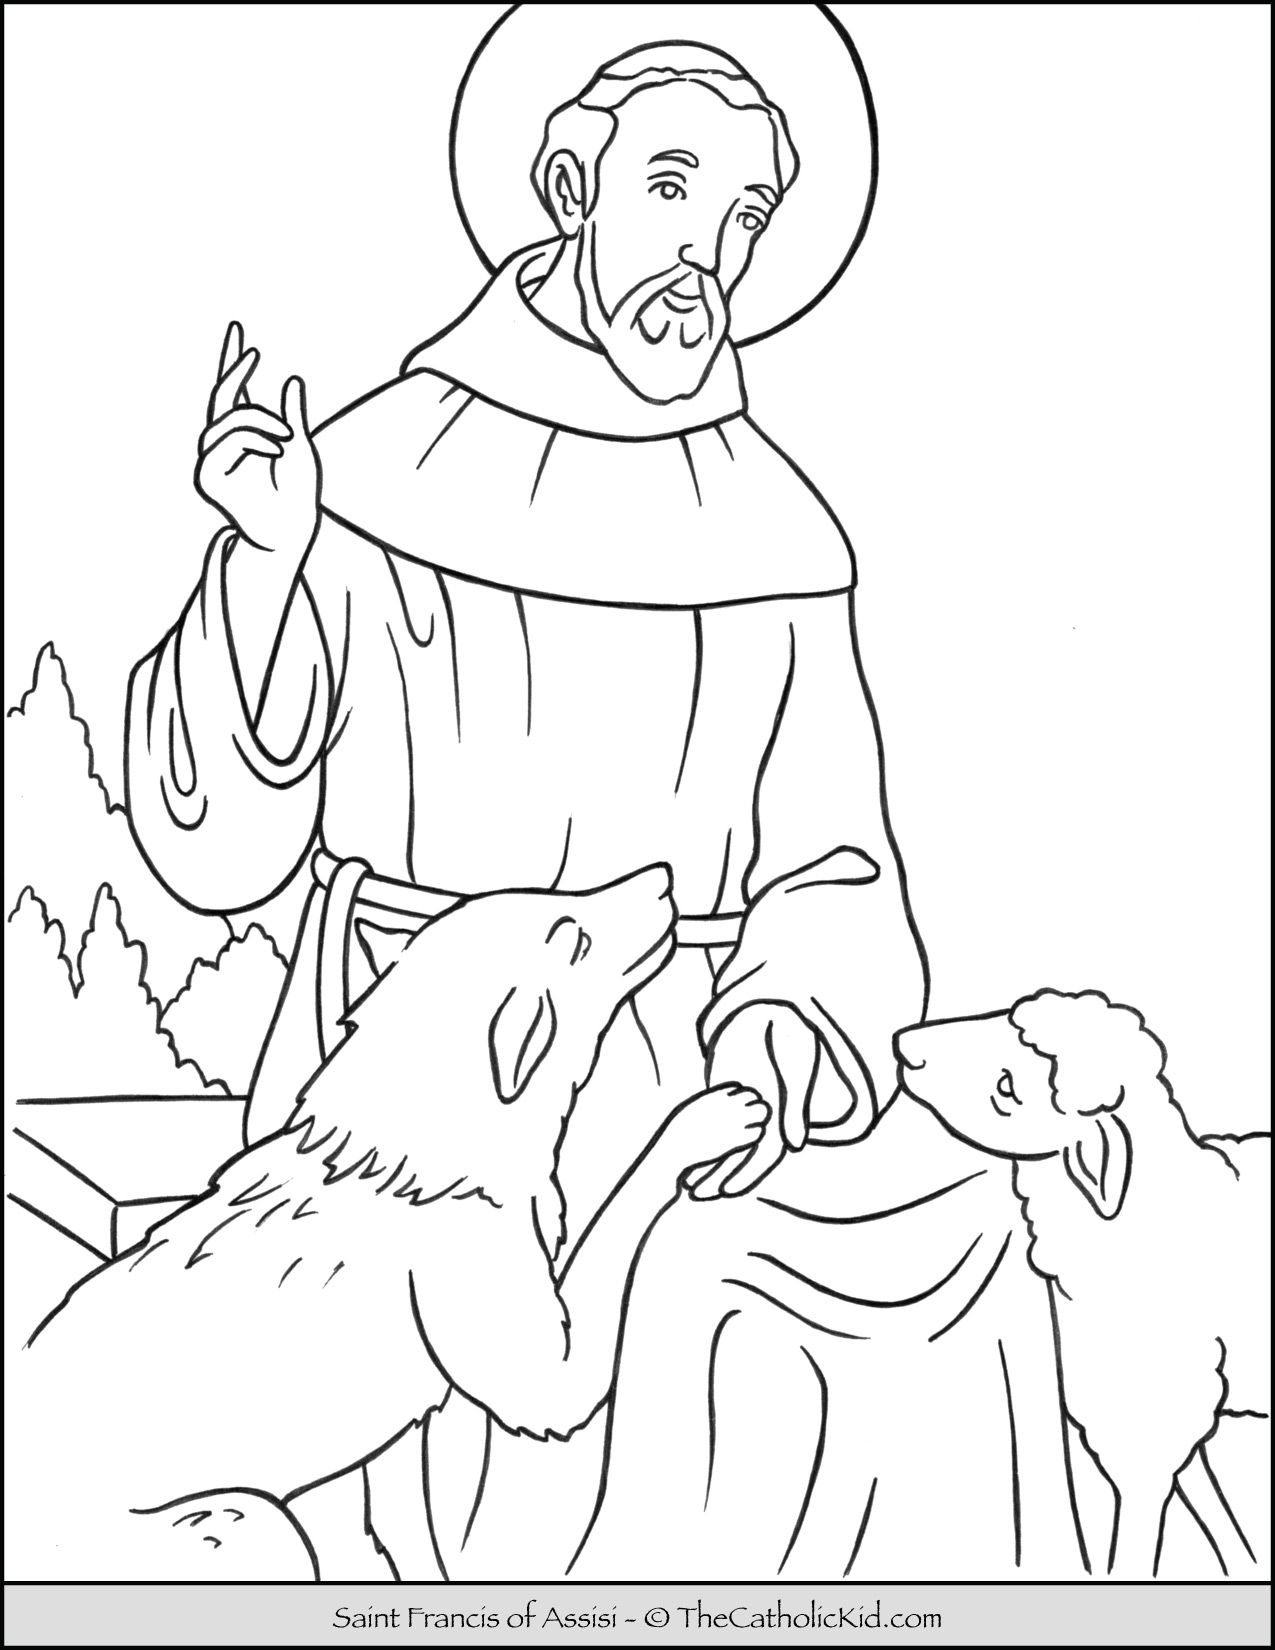 Saint Francis Of Assisi Coloring Page Thecatholickid Com Saint Coloring Coloring Pages Catholic Coloring